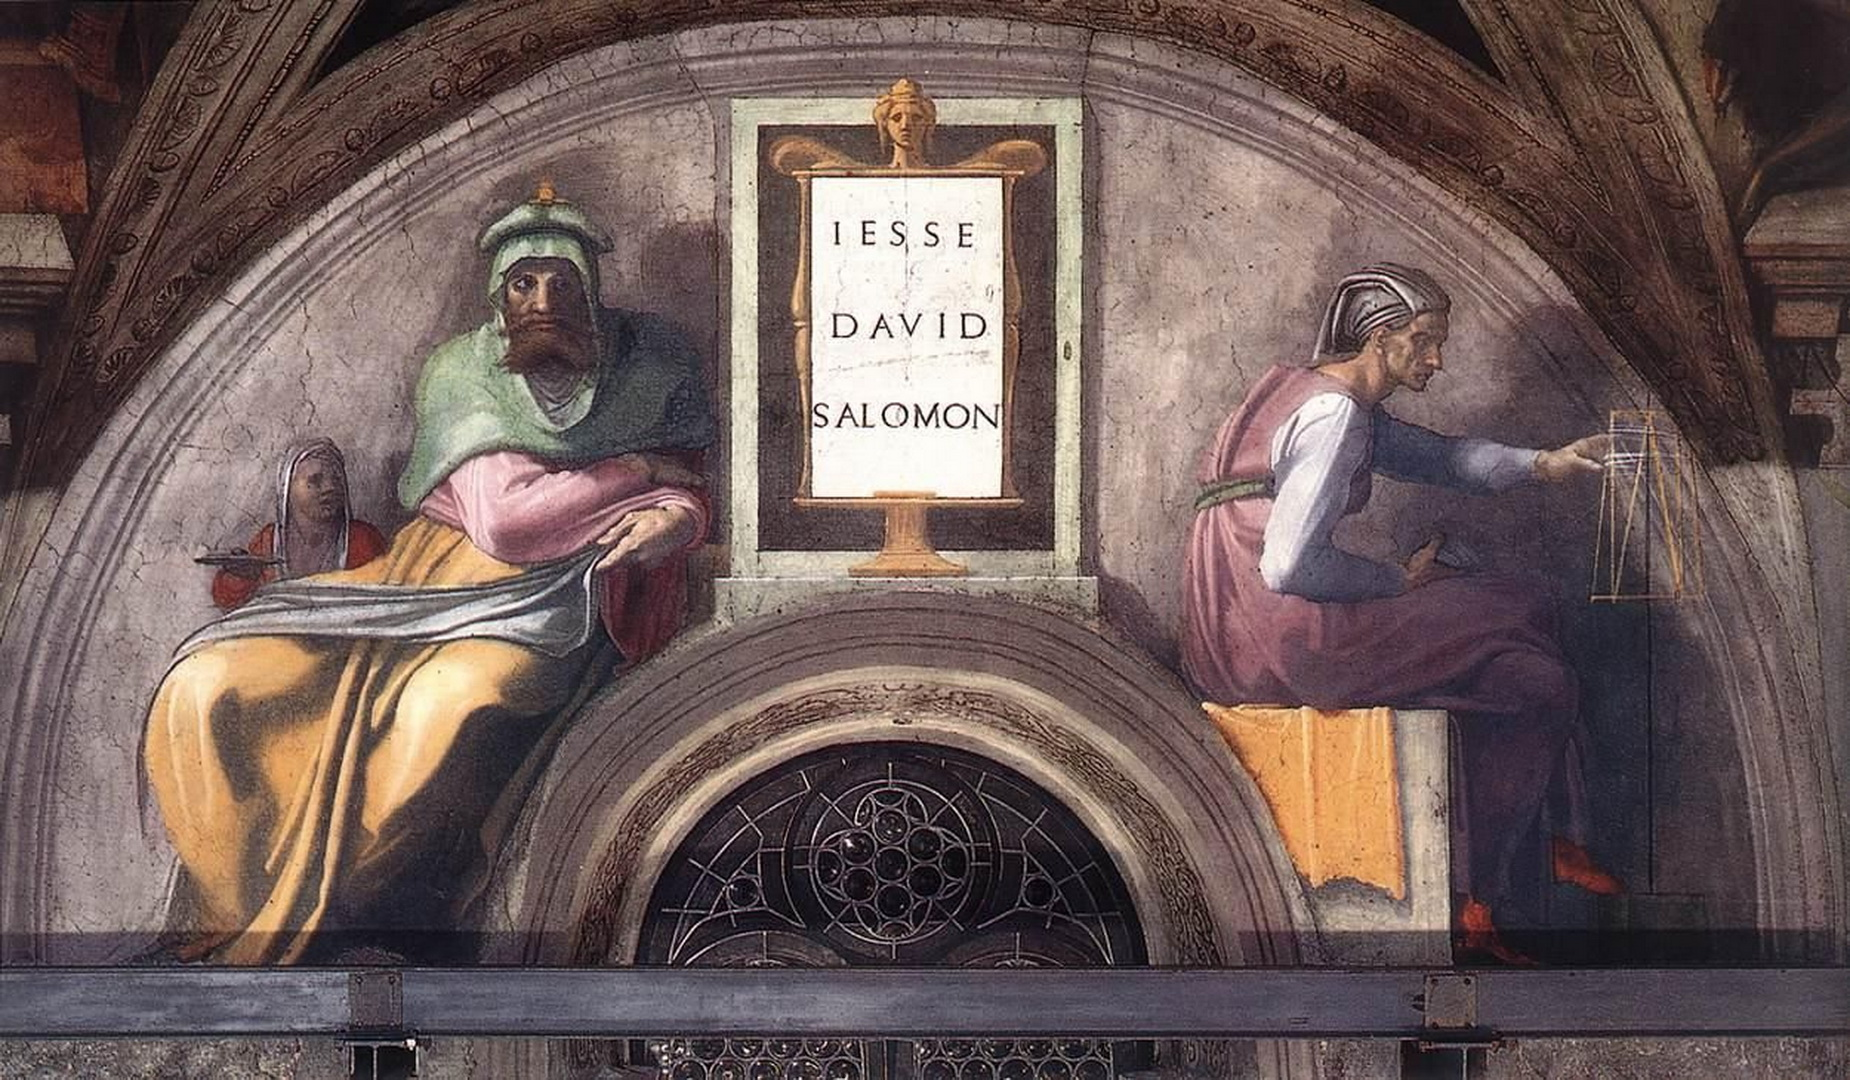 Sistine Chapel Ceiling Ancestors of Christ Jesse - David - Solomon